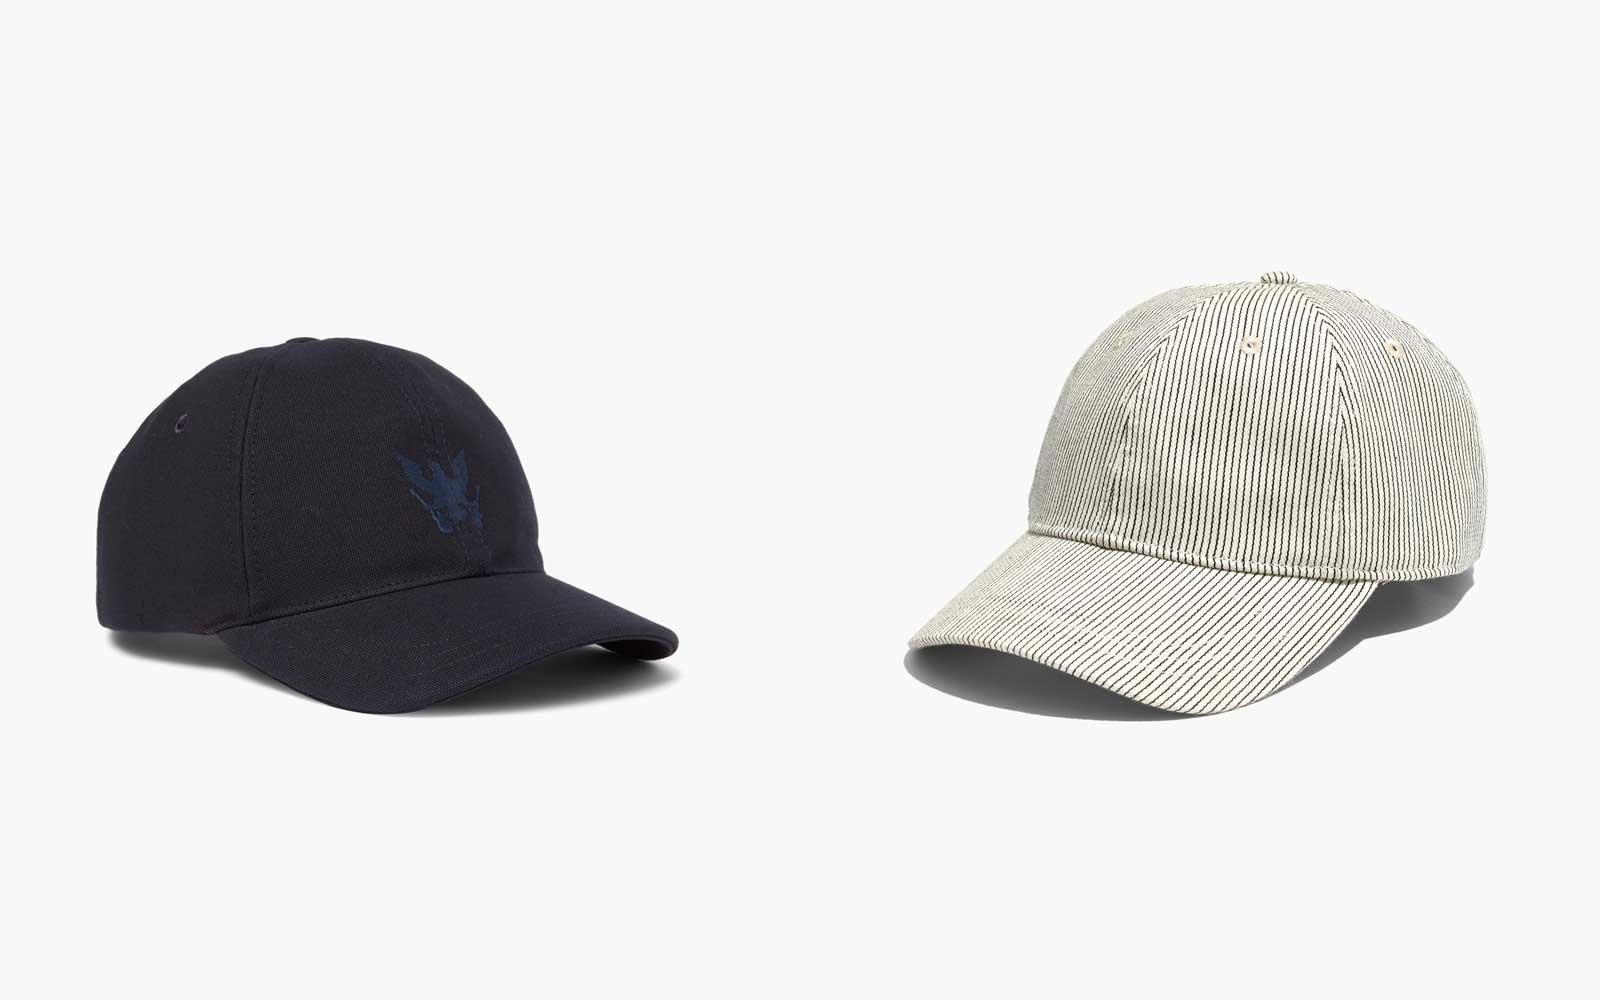 Hats from A.P.C. and Madewell